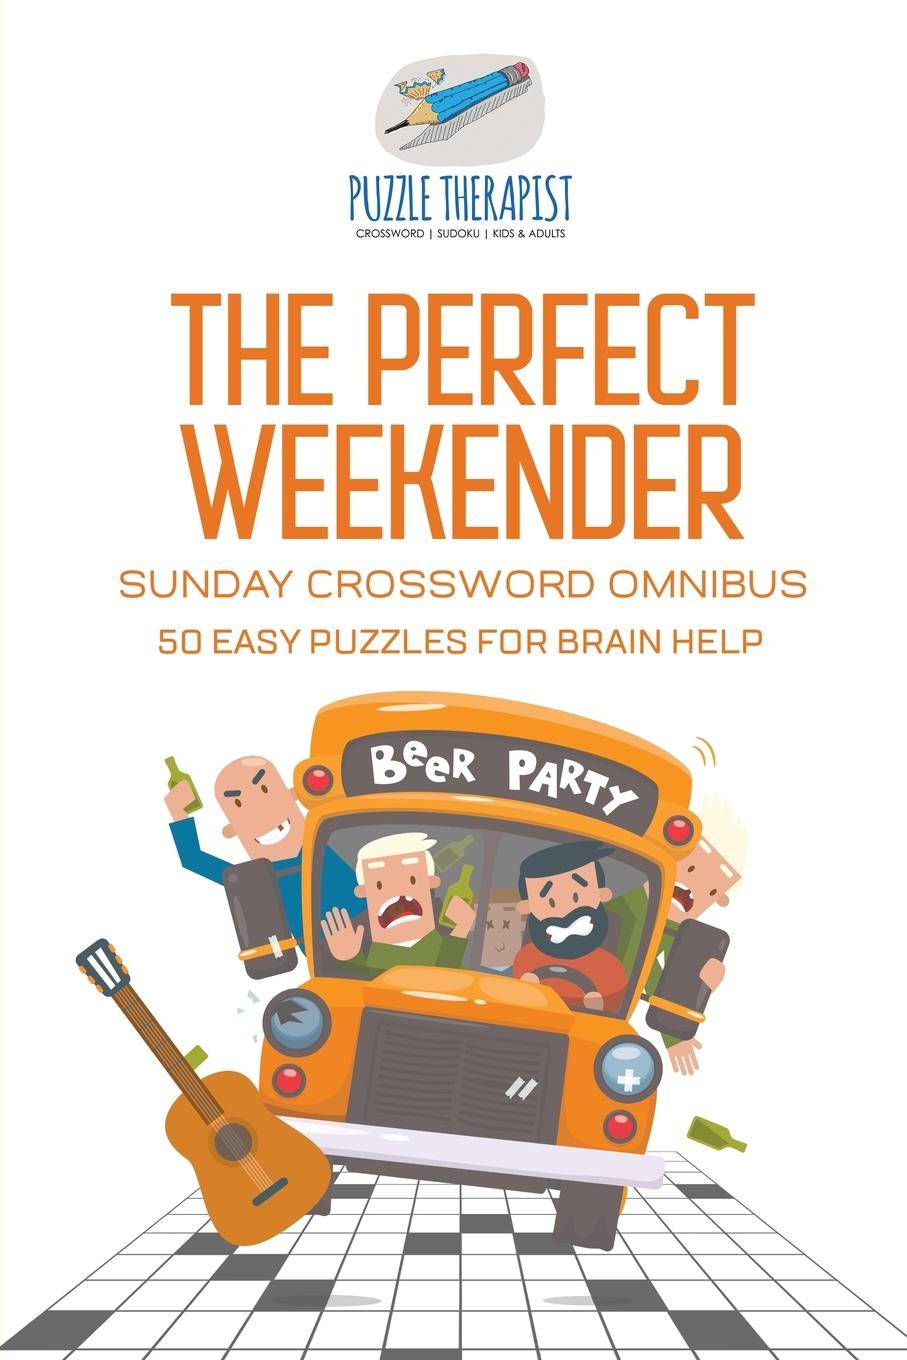 Puzzle Therapist The Perfect Weekender . Sunday Crossword Omnibus . 50 Easy Puzzles for Brain Help week planner wall decal